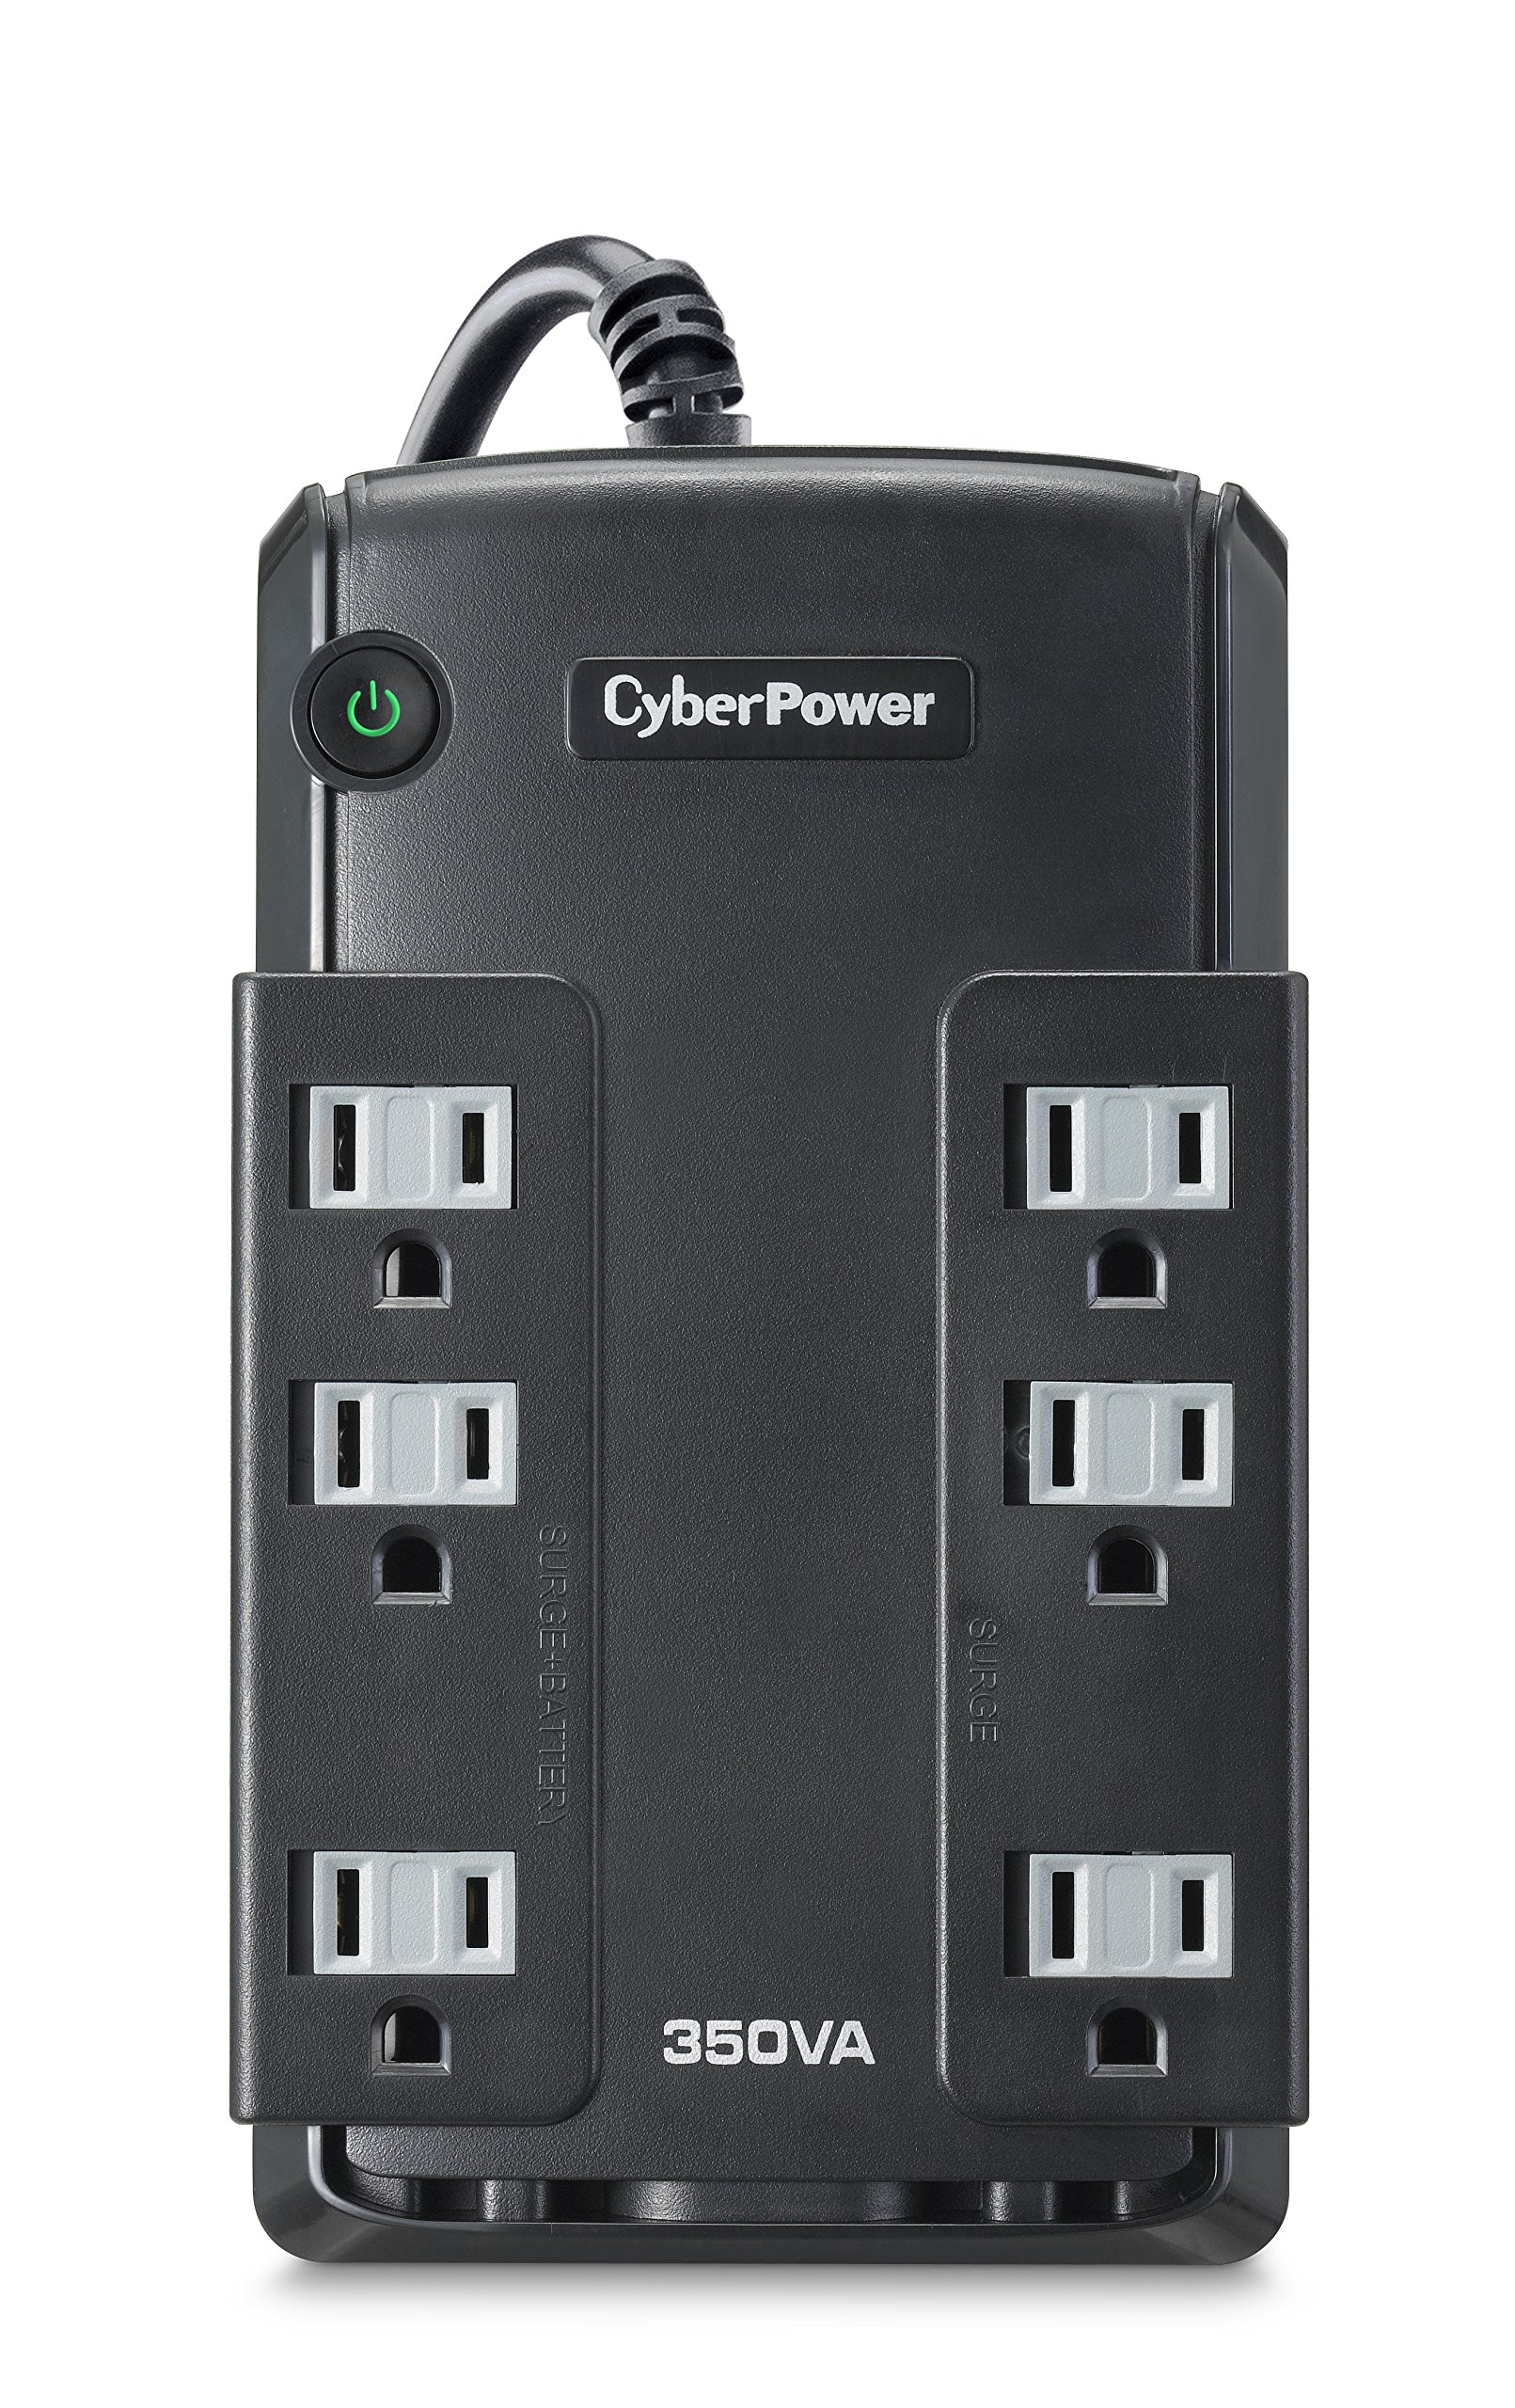 CyberPower CP350SLG Standby UPS System, 350VA/255W, 6 Outlets, Compact